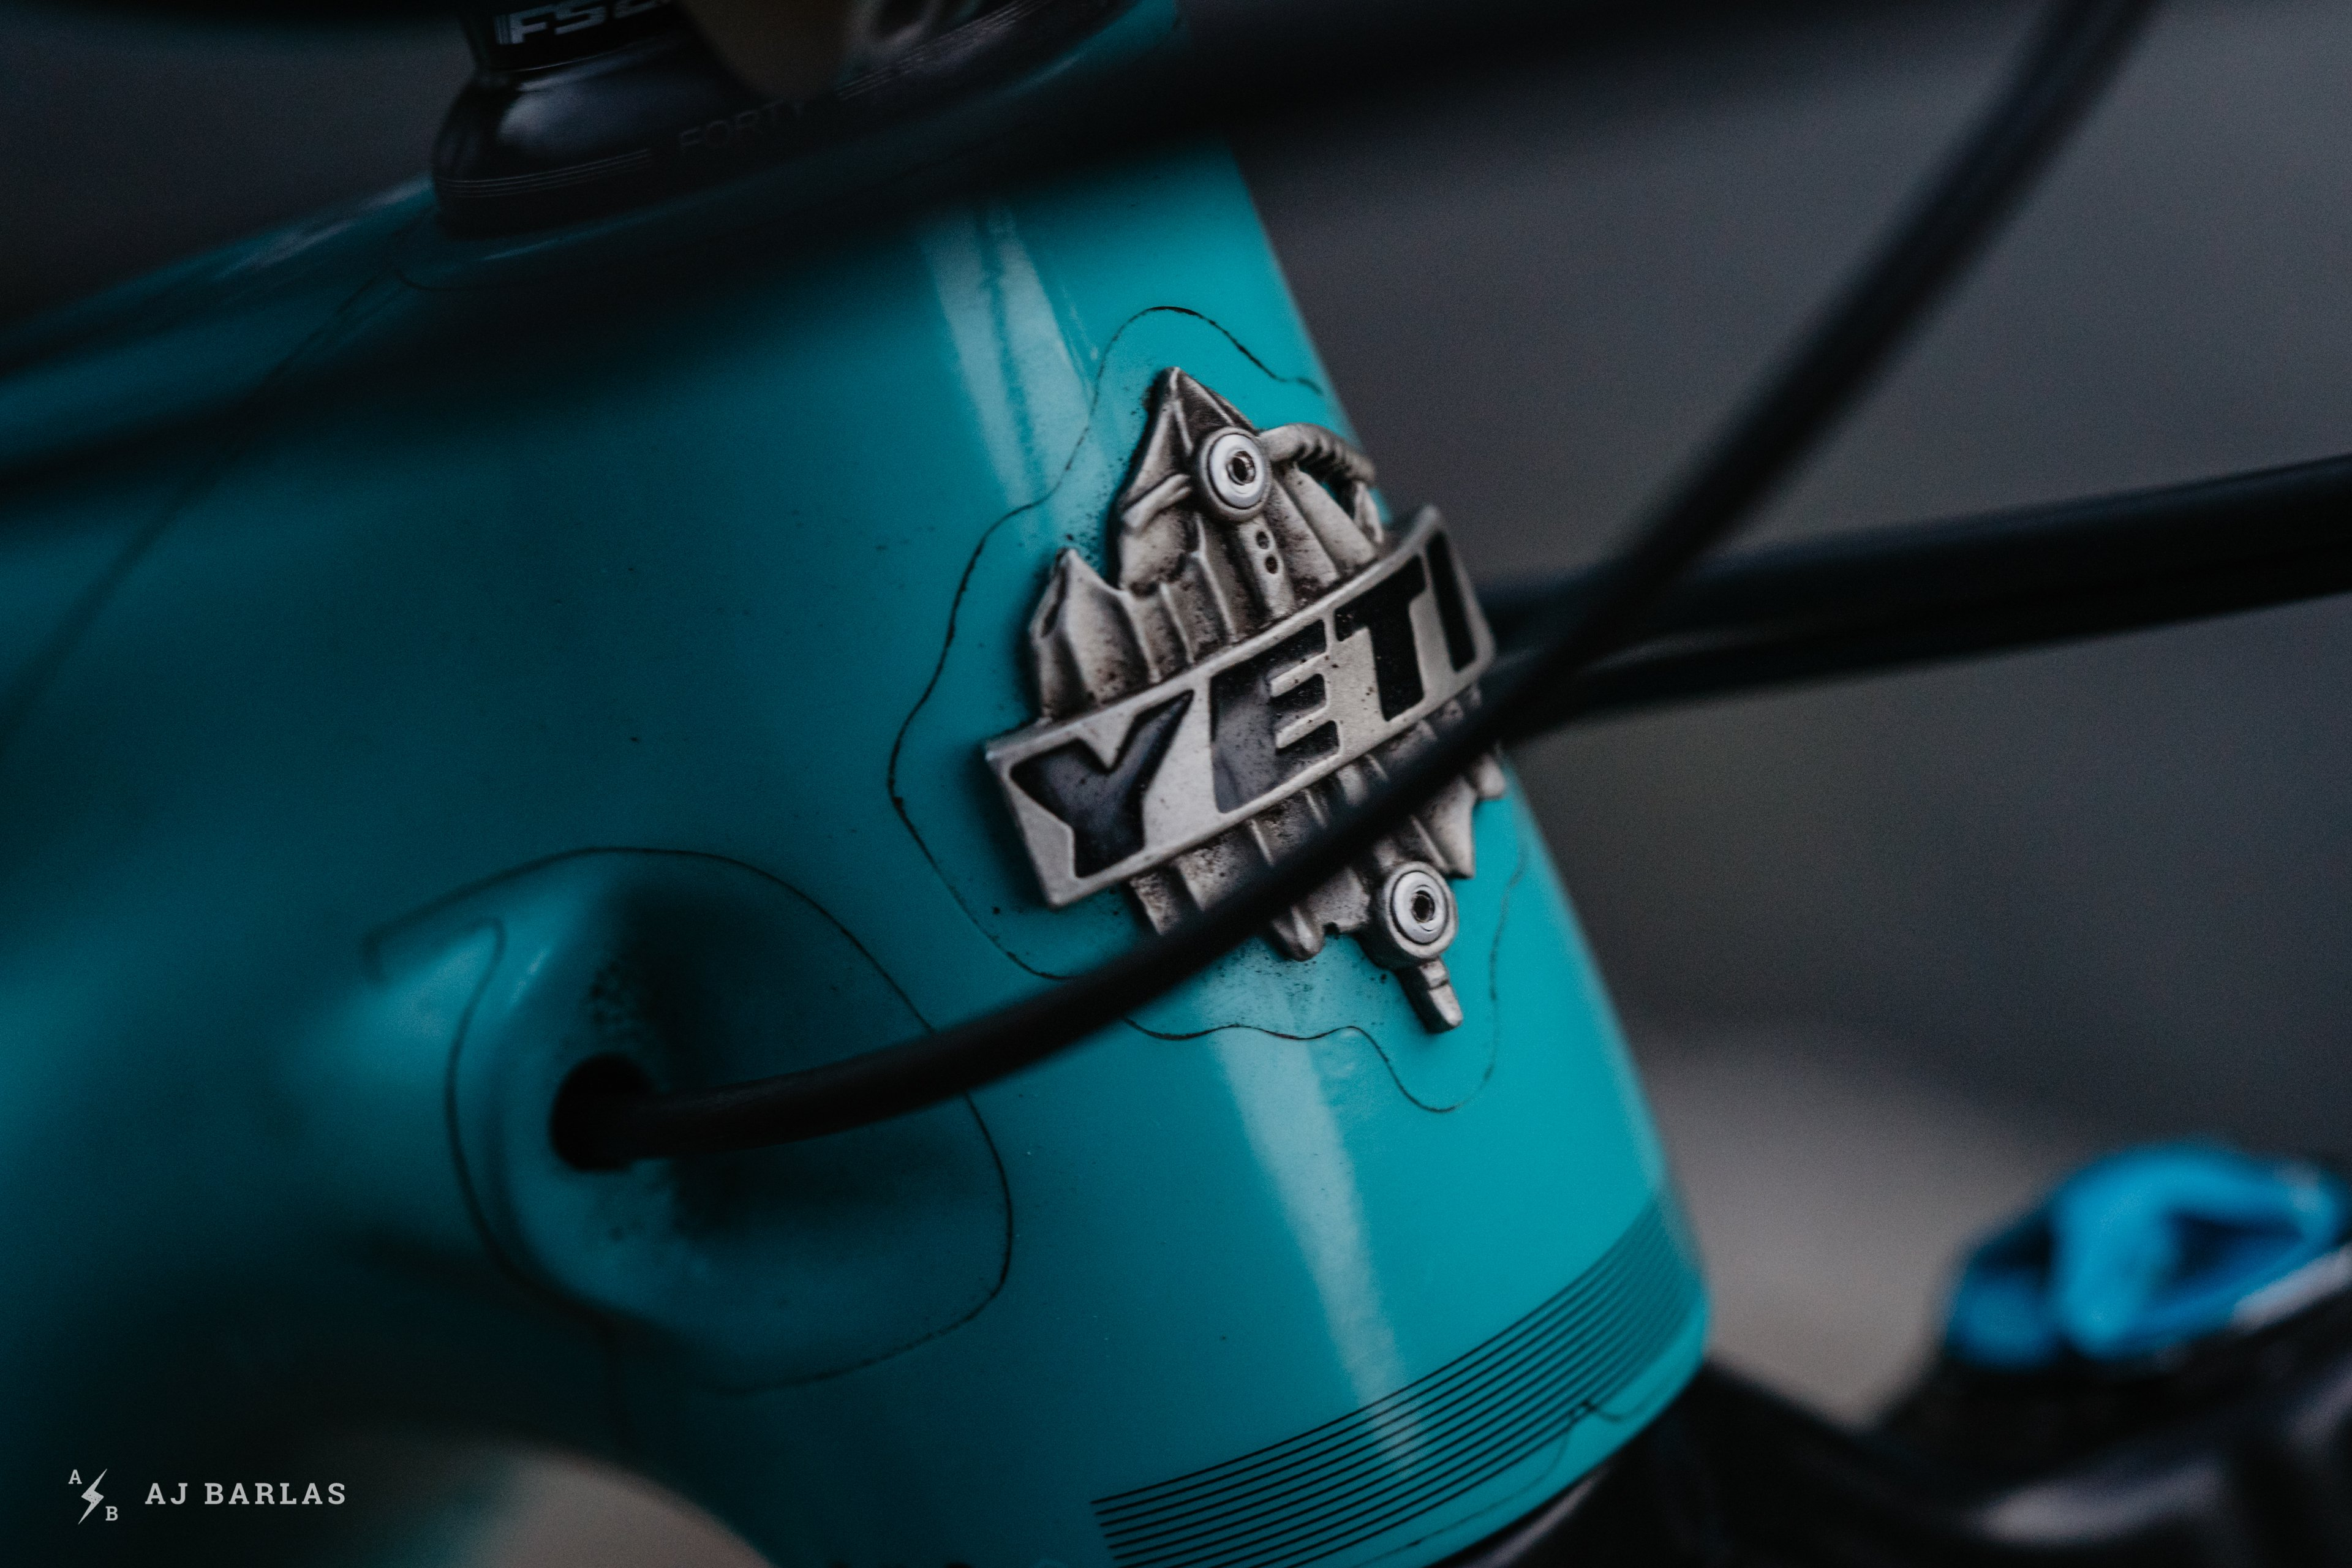 david-fournier-yeti-sb150-nsmb-dream-build-210121-ajbarlas-09693.jpg